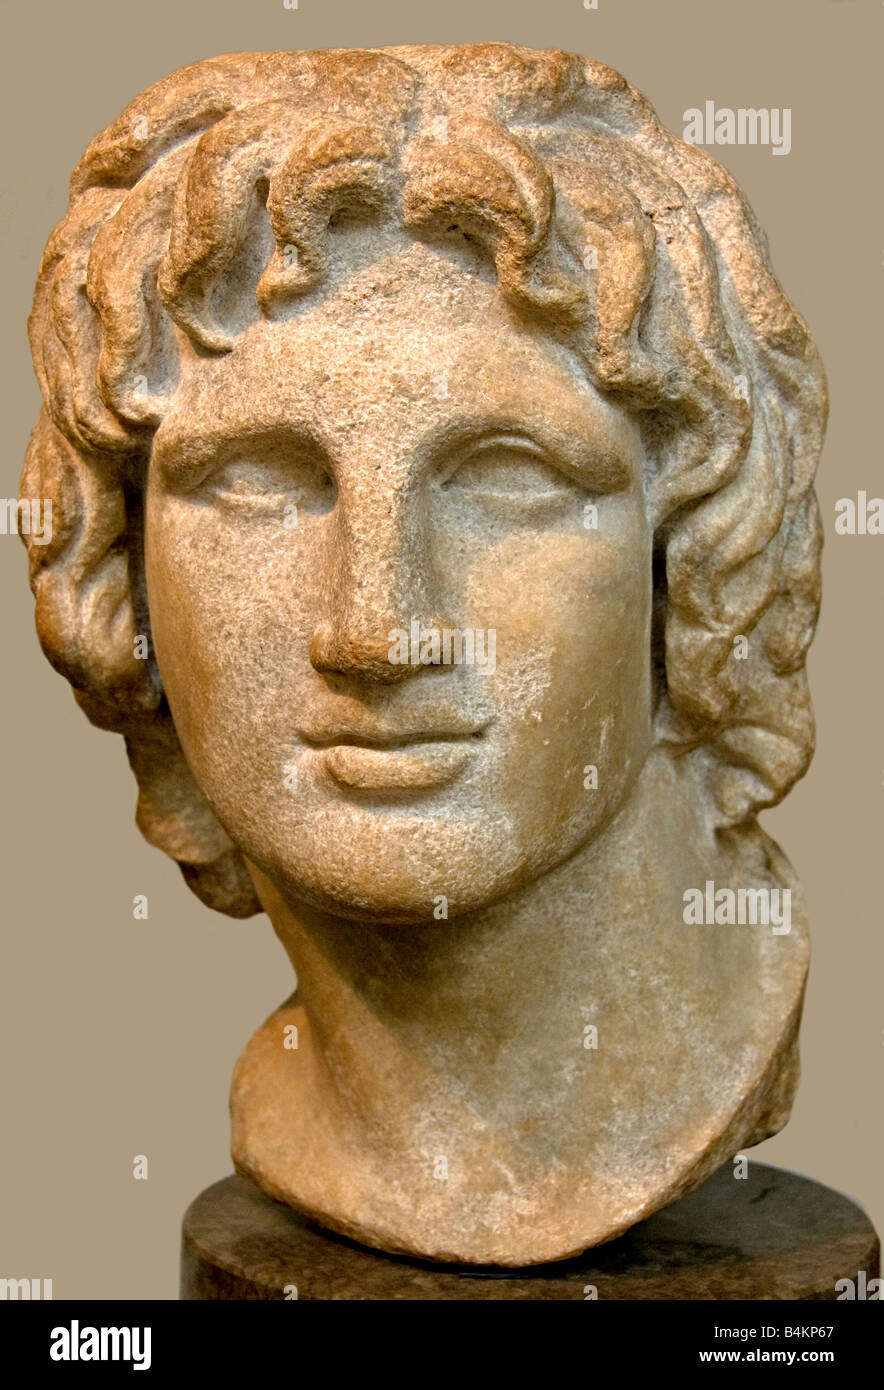 research papers on alexander the great Describe the conquests of alexander the great and analyze the legacy of his empire looking for the best essay writer click below to have a customized paper written.